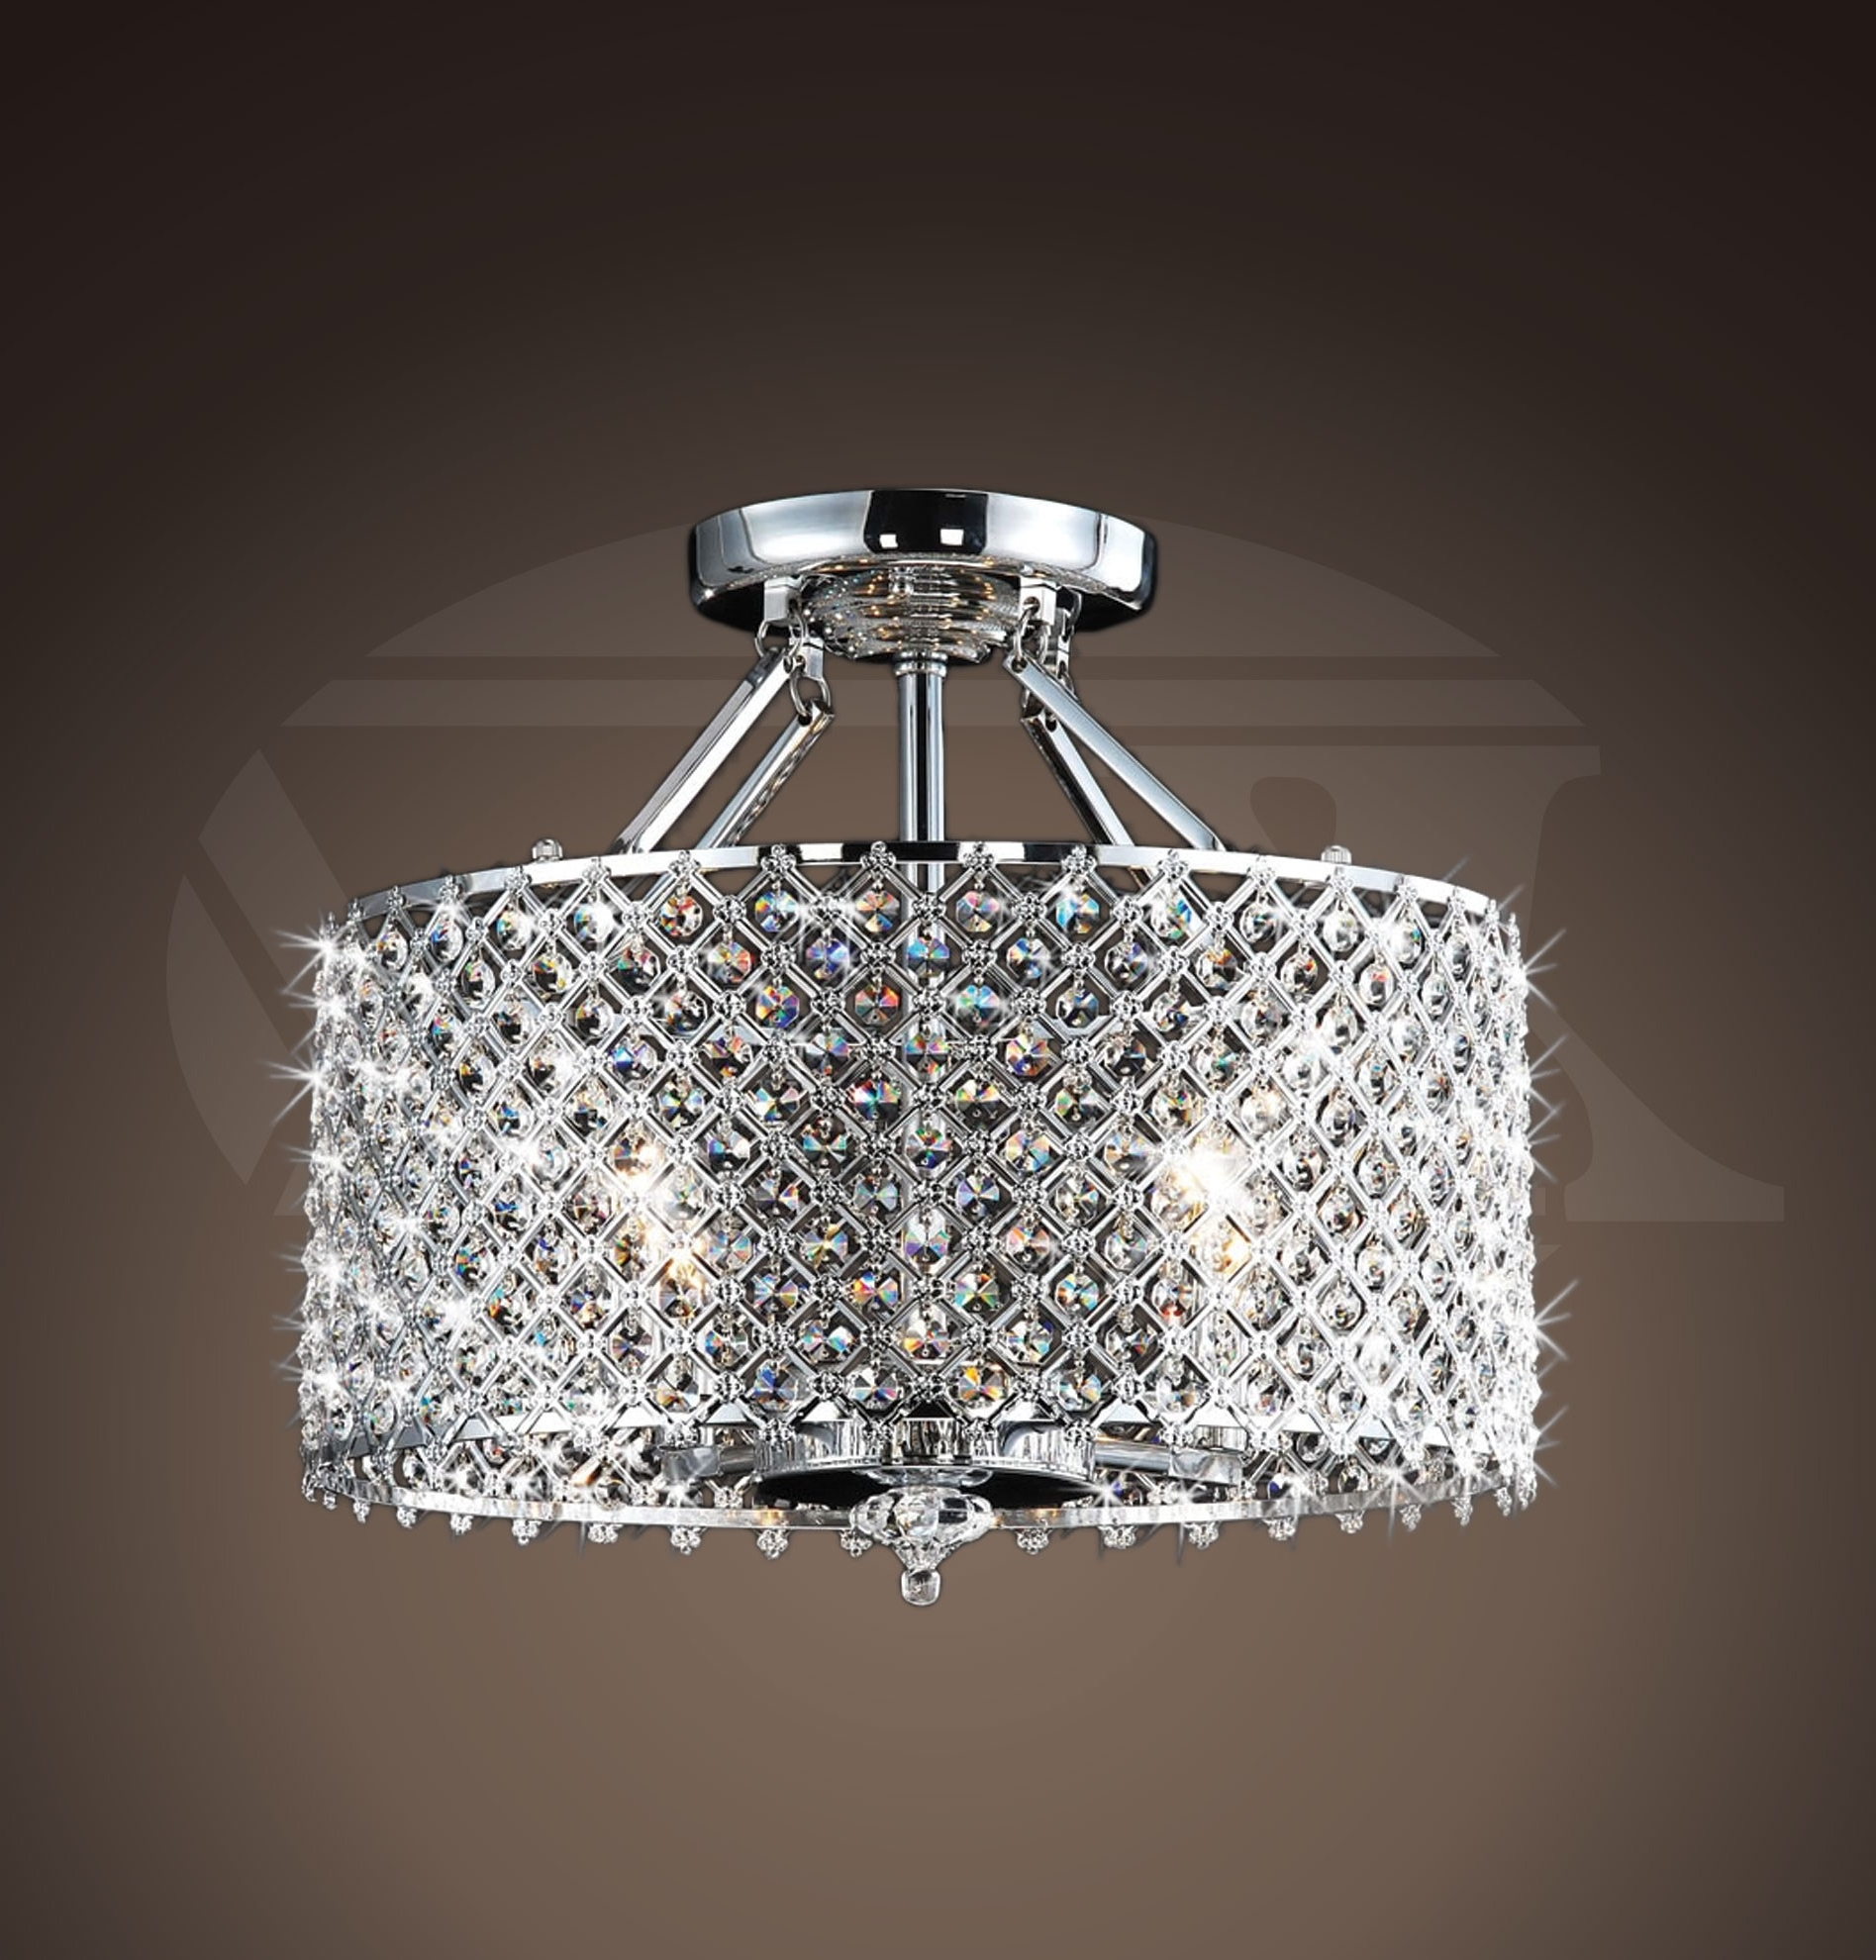 Chandeliers Design : Marvelous Ceiling Chandelier Droplet Gem With Regard To Most Popular Flush Fitting Chandelier (View 7 of 20)